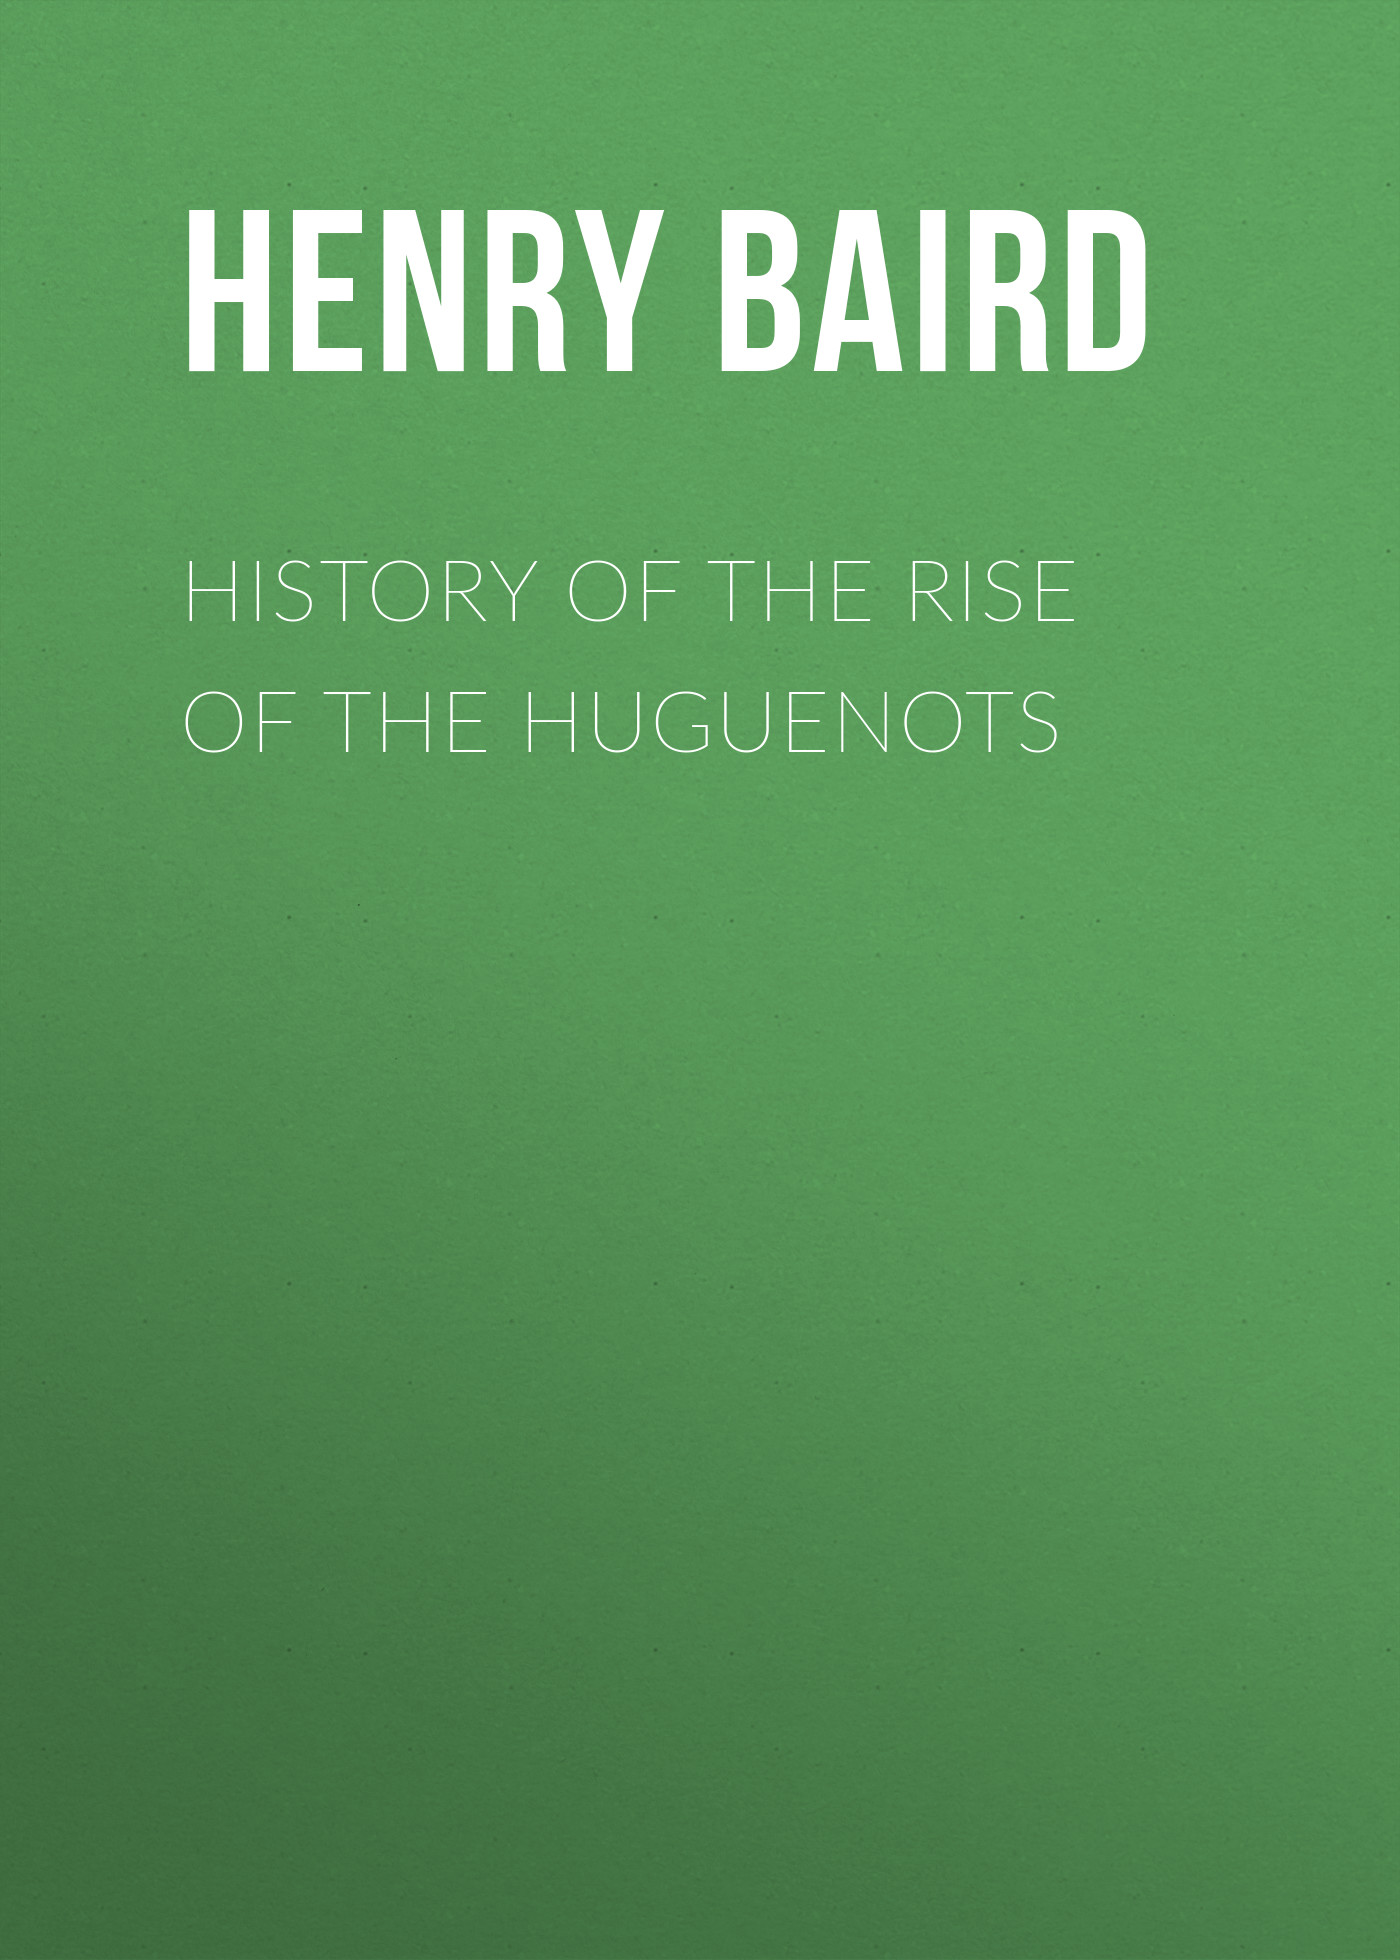 Baird Henry Martyn History of the Rise of the Huguenots accept – the rise of chaos cd